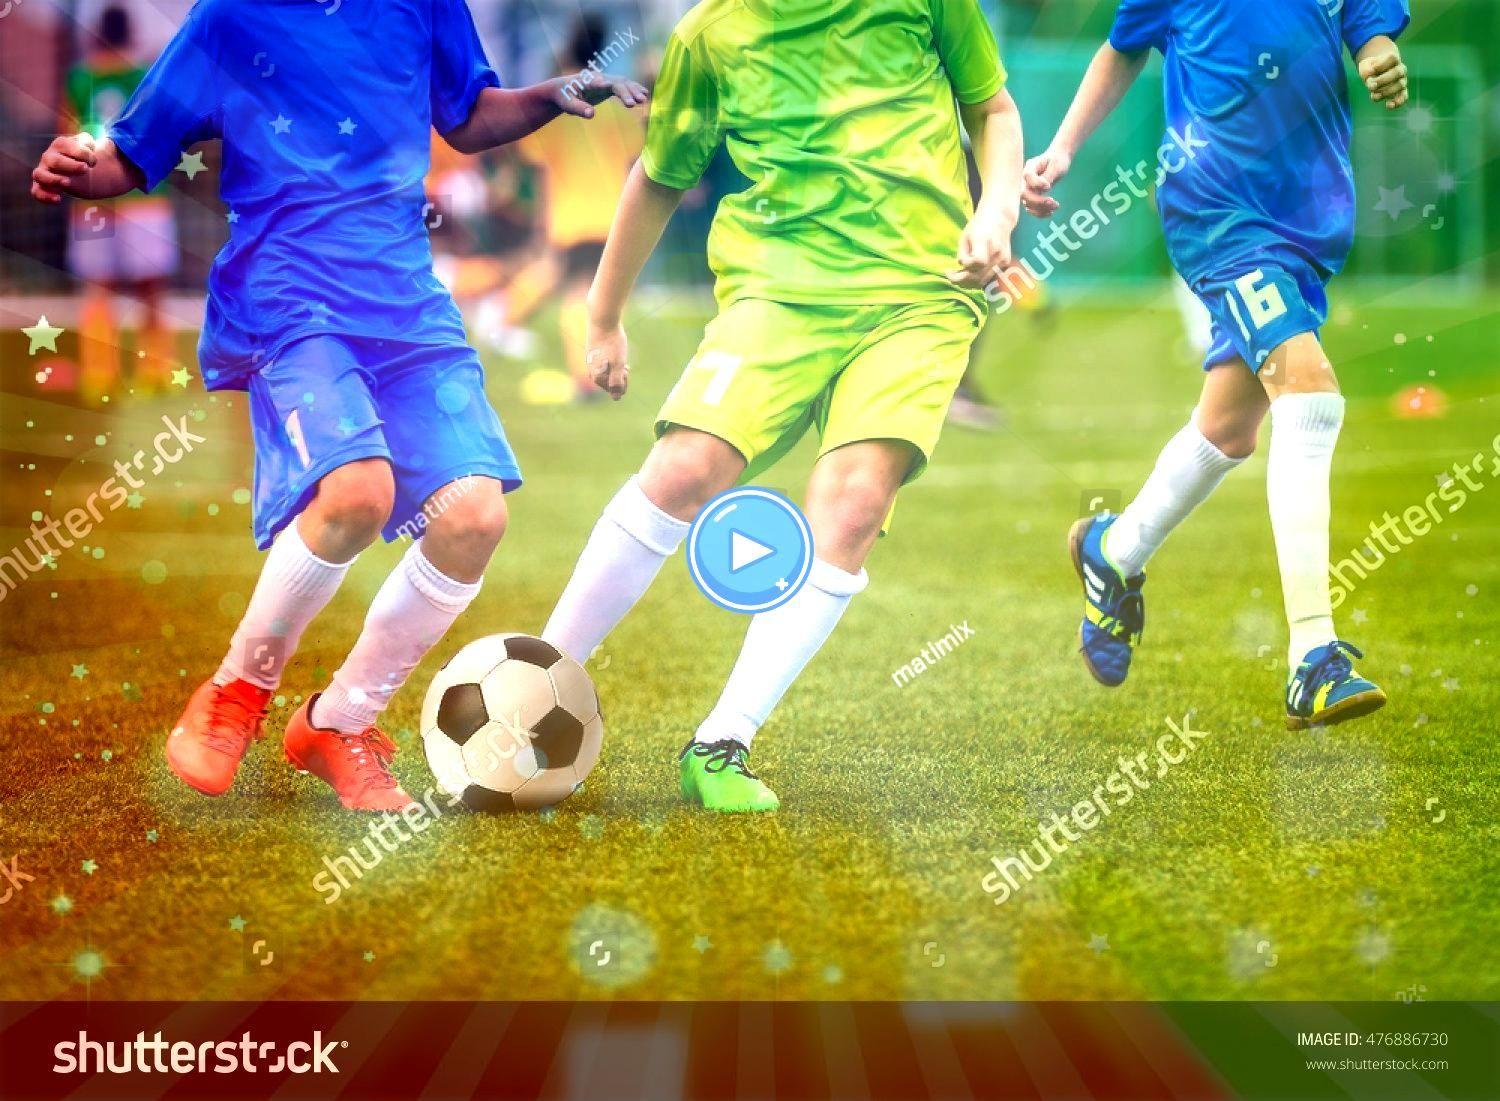 soccer players playing match on the sports grass field Youth soccer players playing match on the sports grass field  Chinas richest man is backing plans to launch a rival...